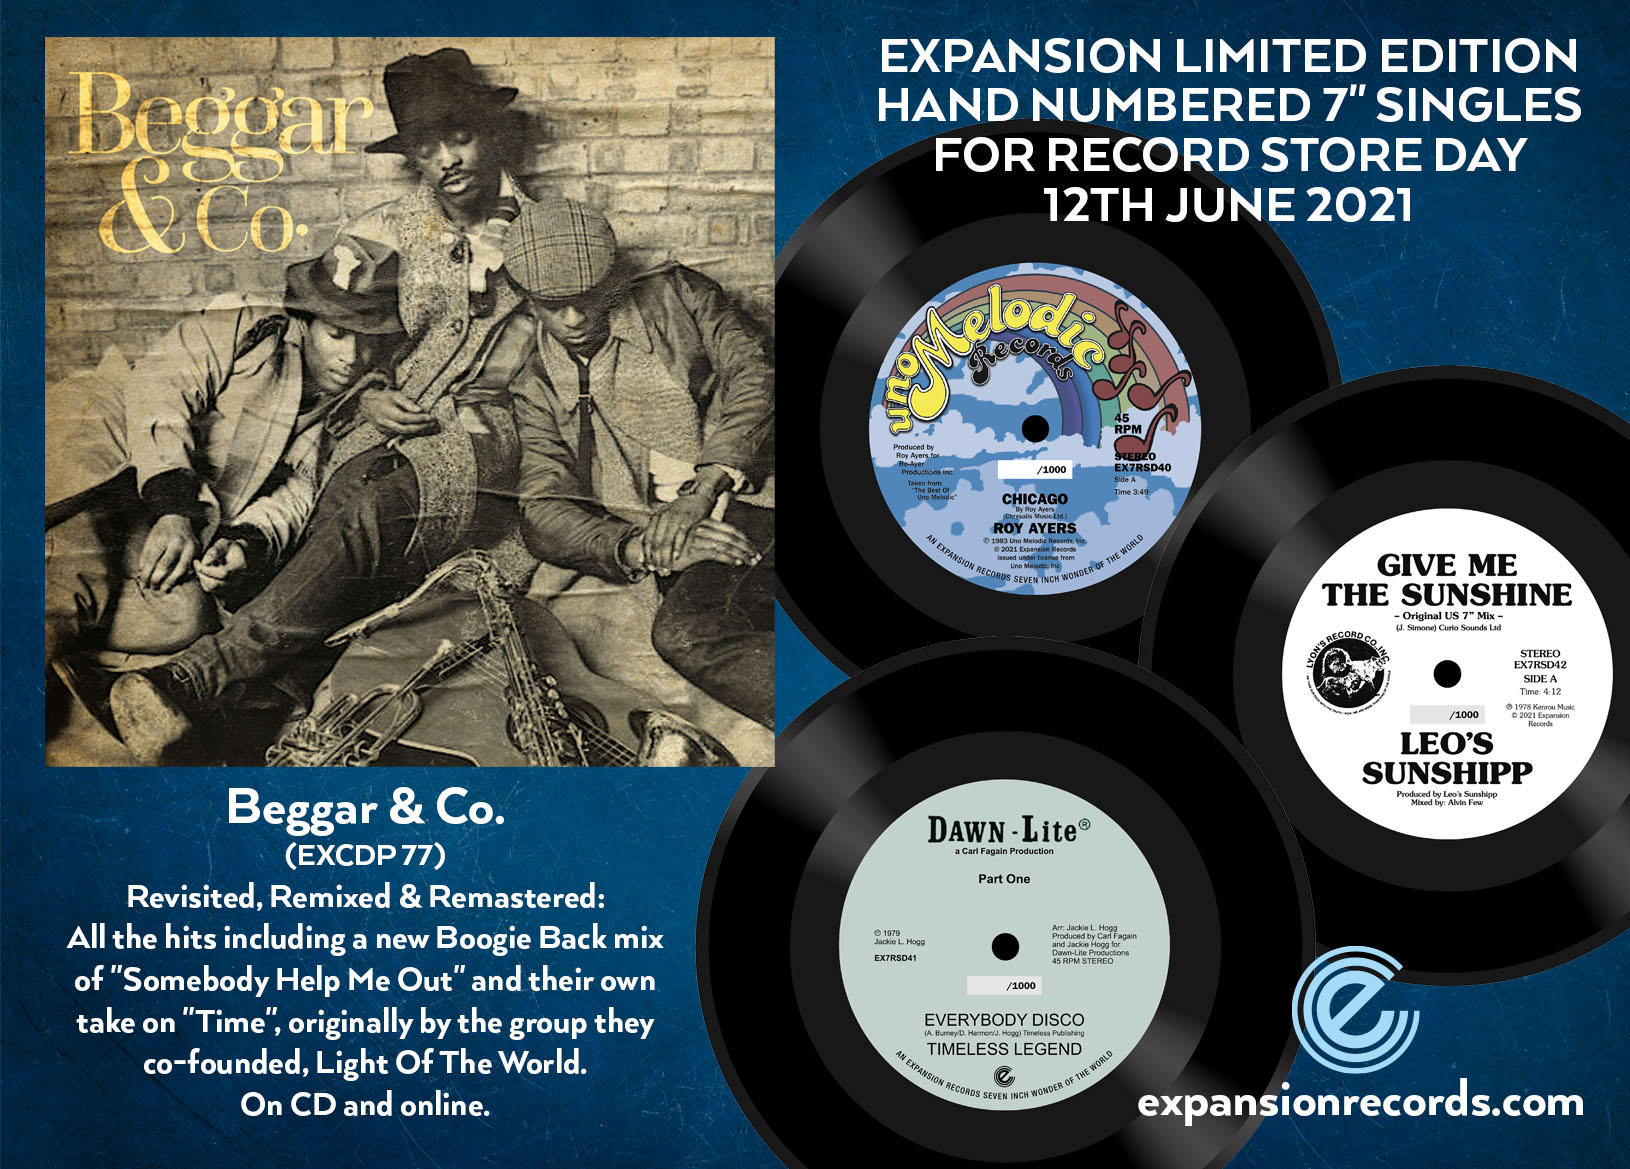 Beggar & Co album on Expansion Records